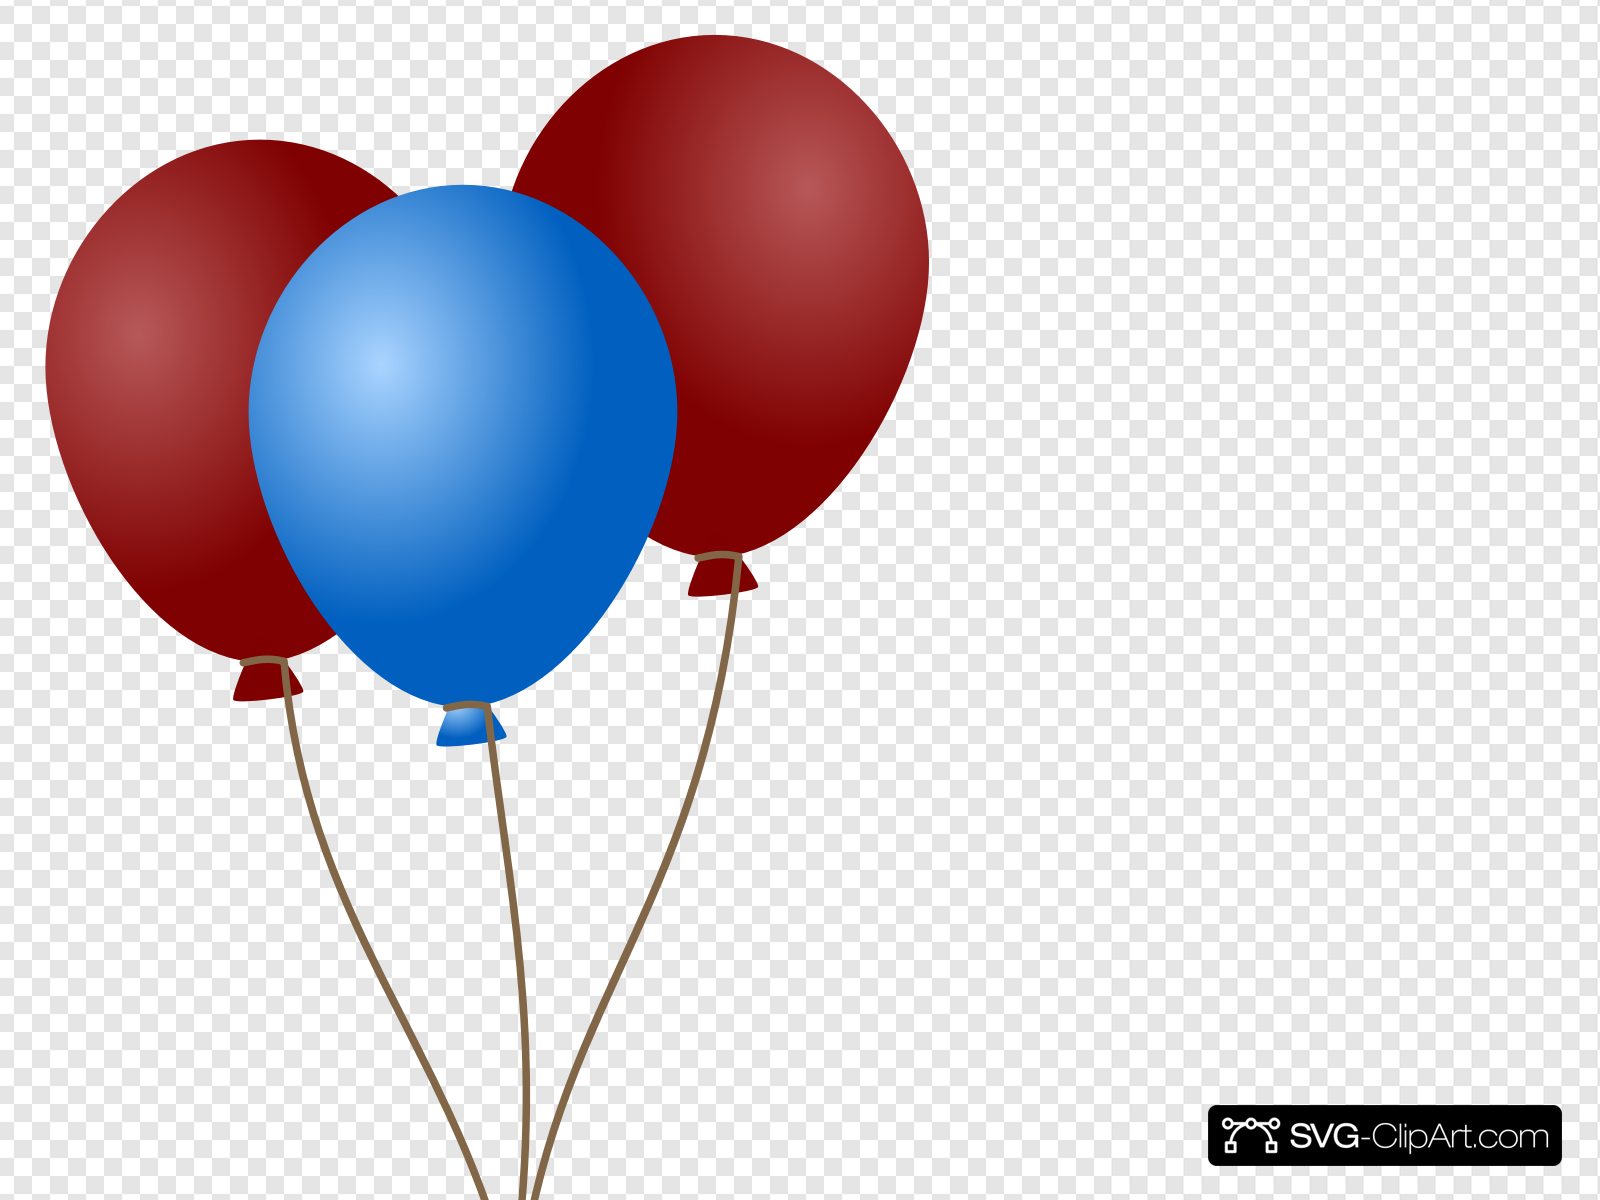 Emmas Blue Balloons Clip art, Icon and SVG.